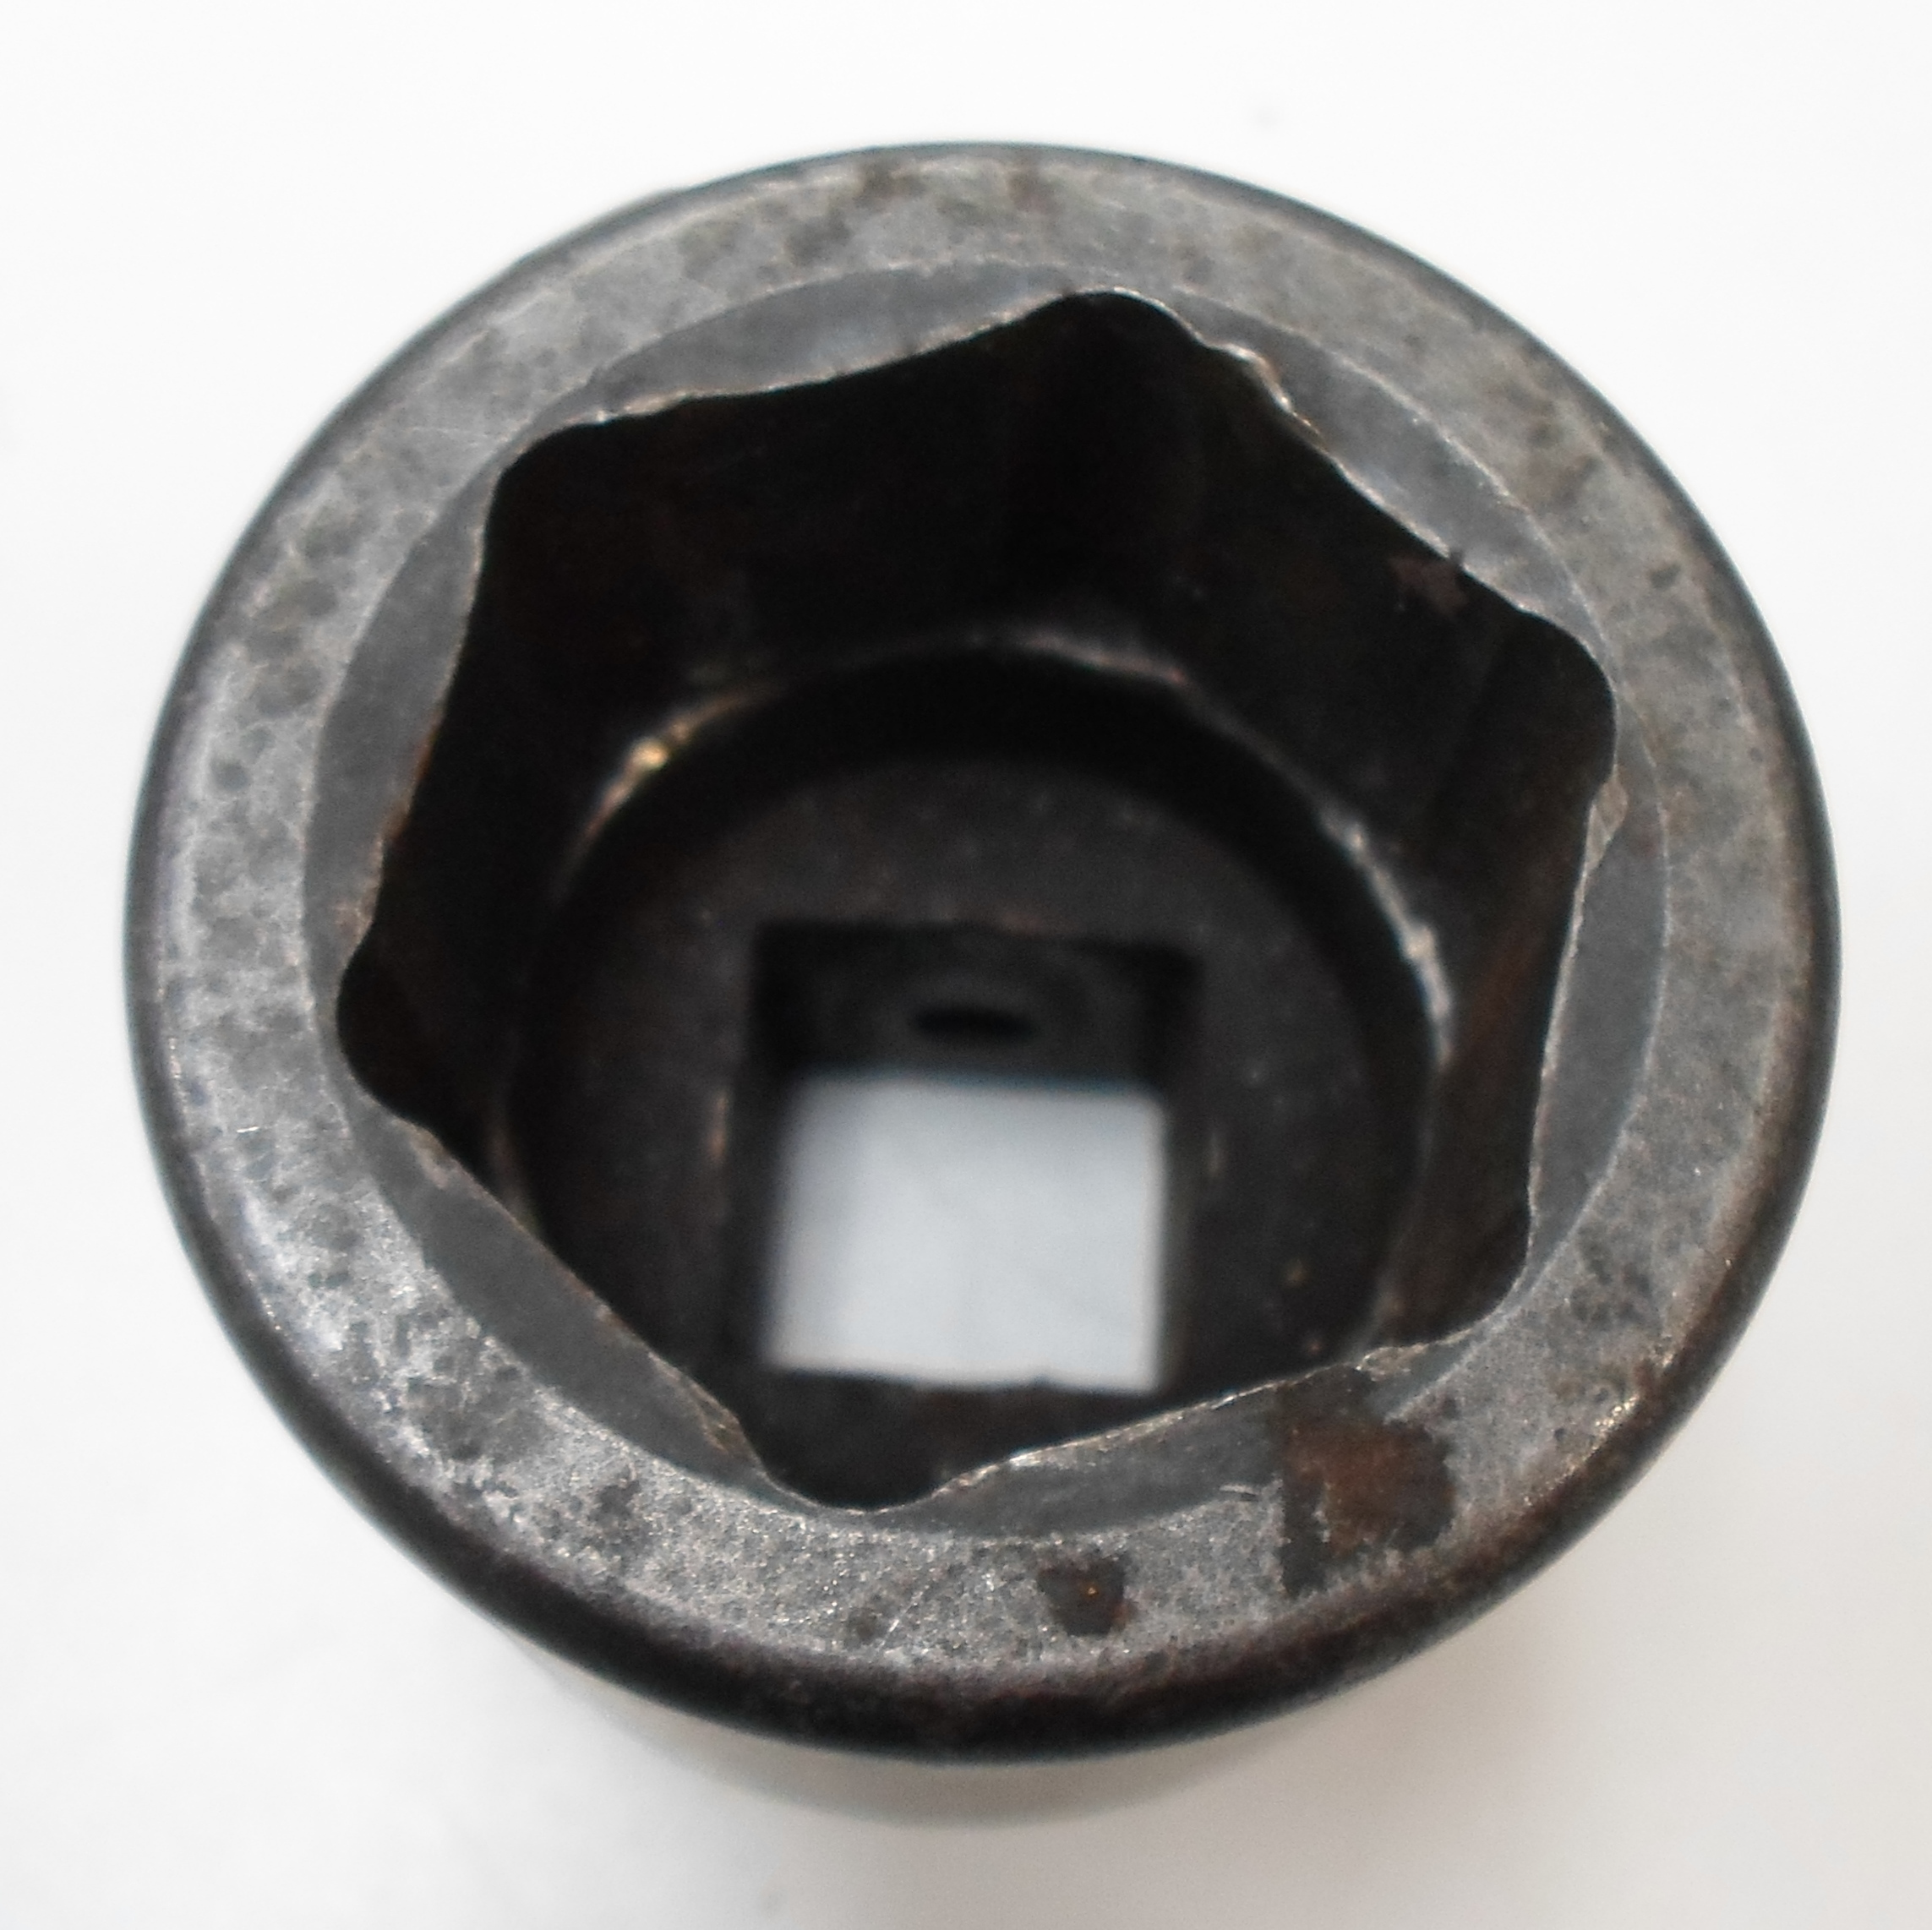 SNAP-ON - IM442 - 35 MM SOCKET - 3/4